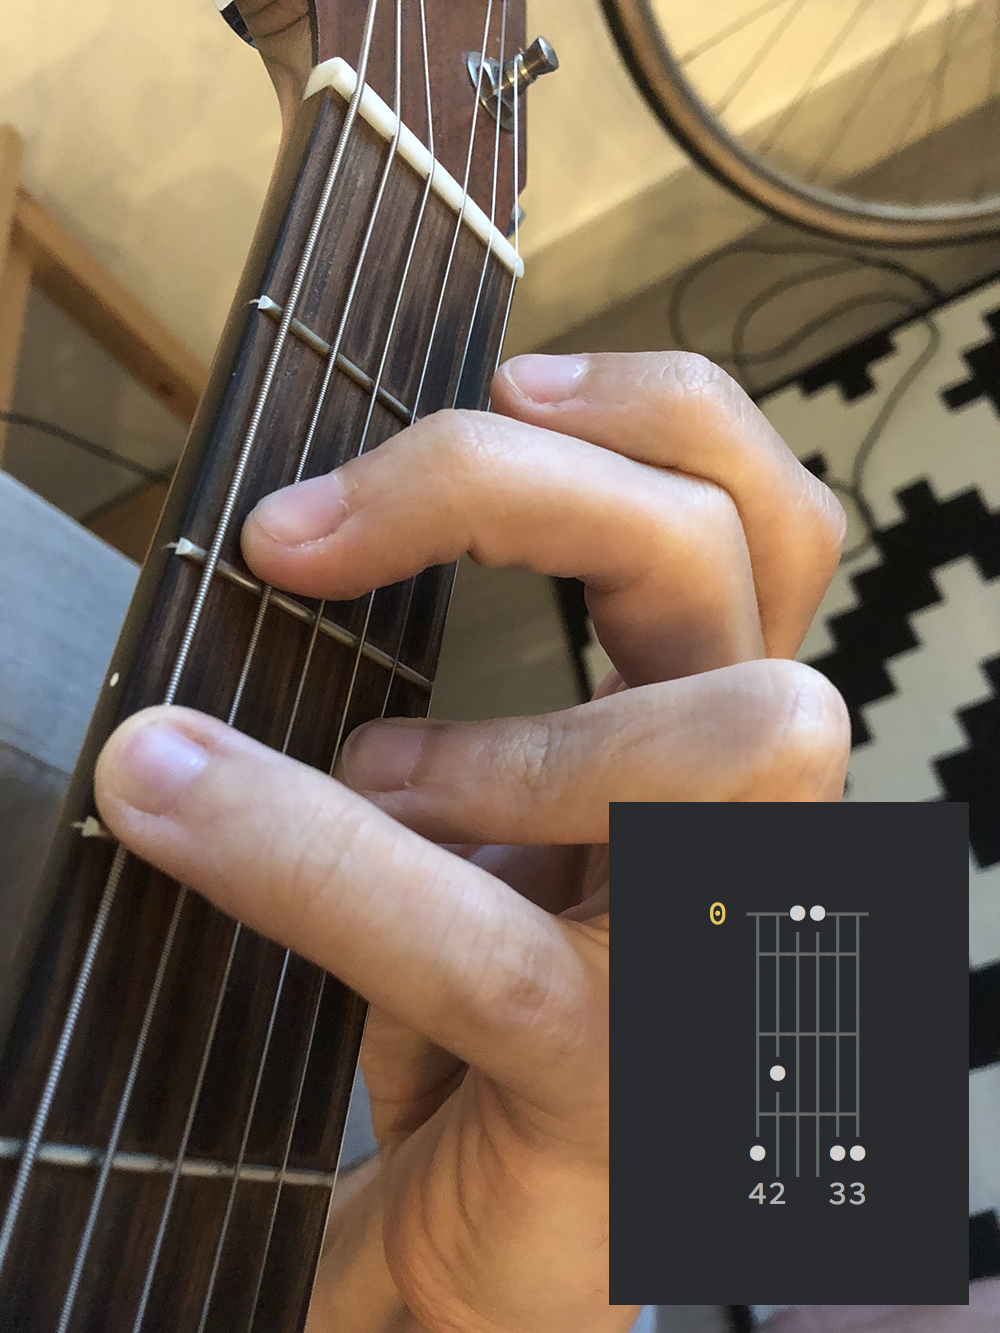 Discussion Algorithmically Generating Chord Fingerings Guitar